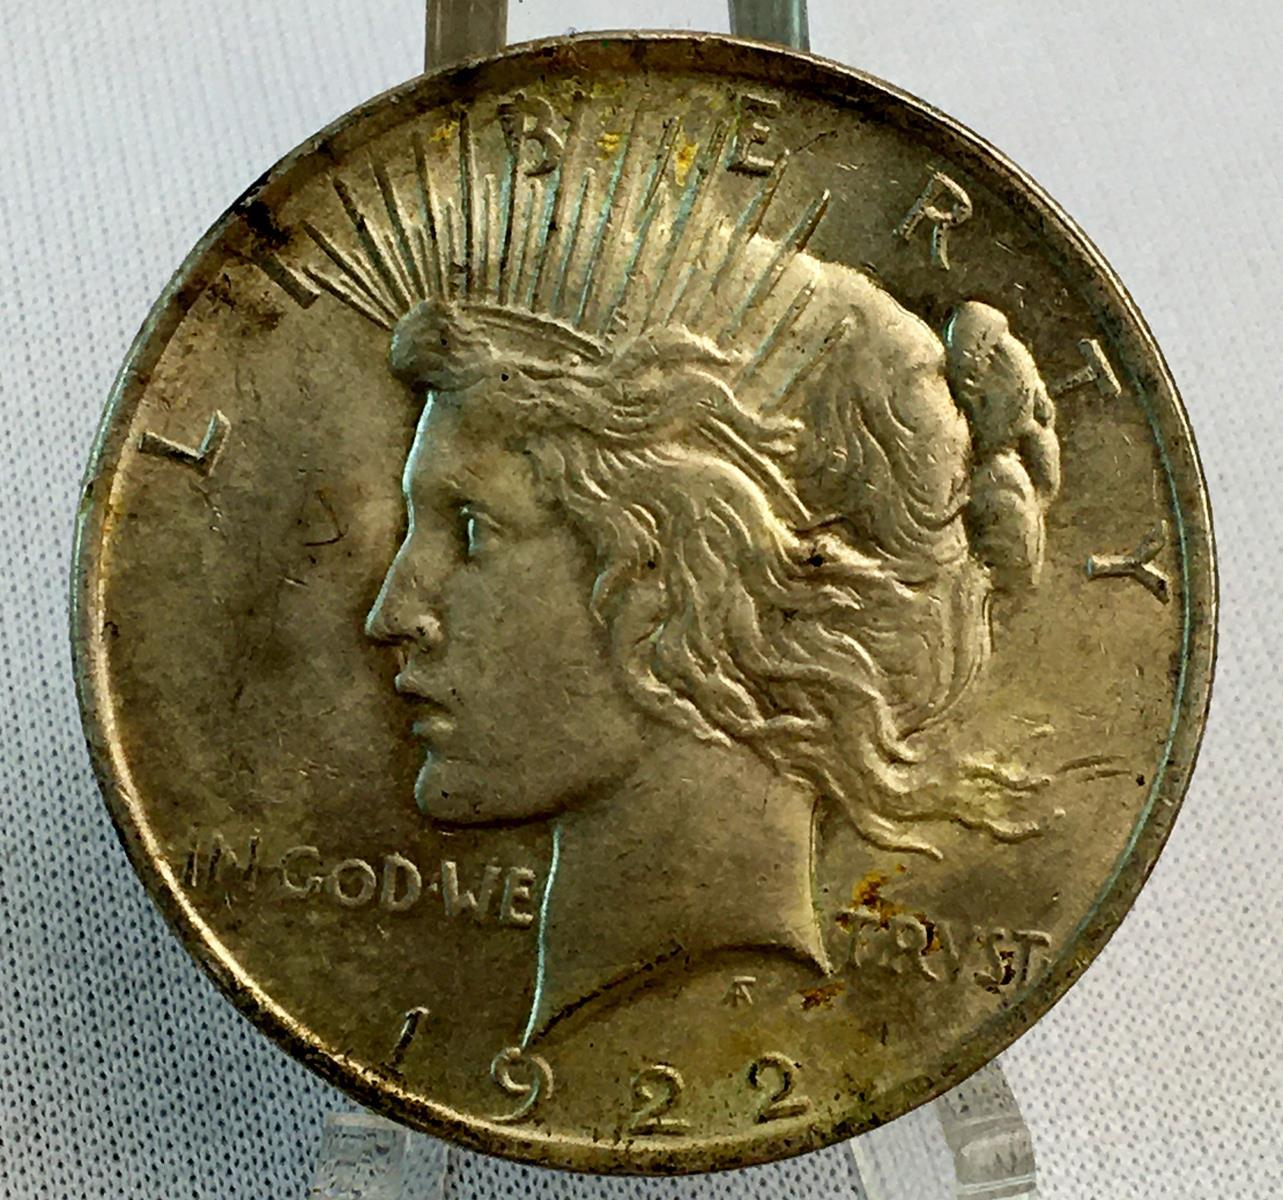 1922 US $1 Peace Silver Dollar